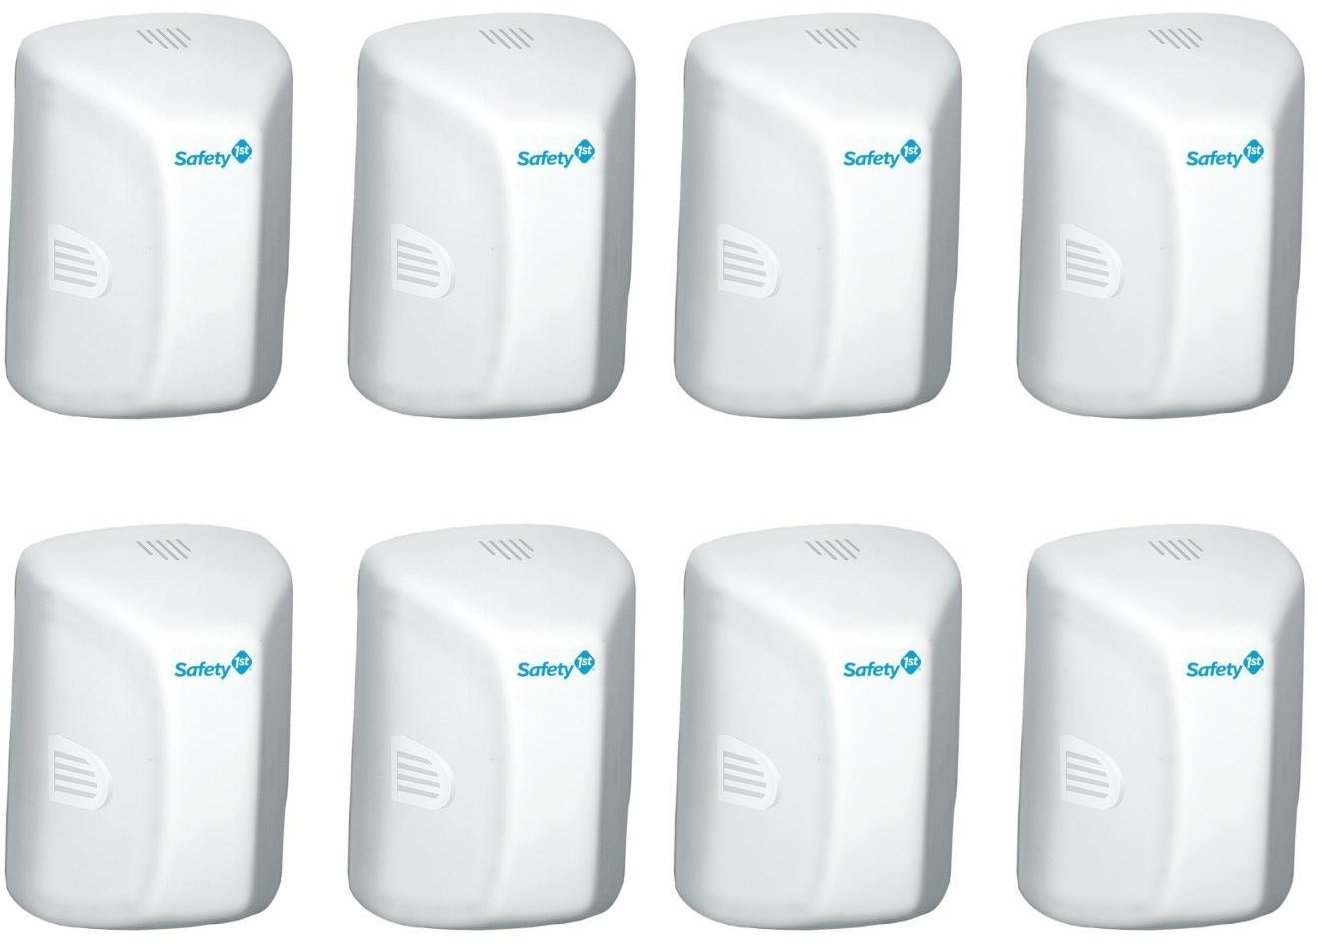 Safety 1st 48308 Outlet Cover With Cord Shortener, 8 Count